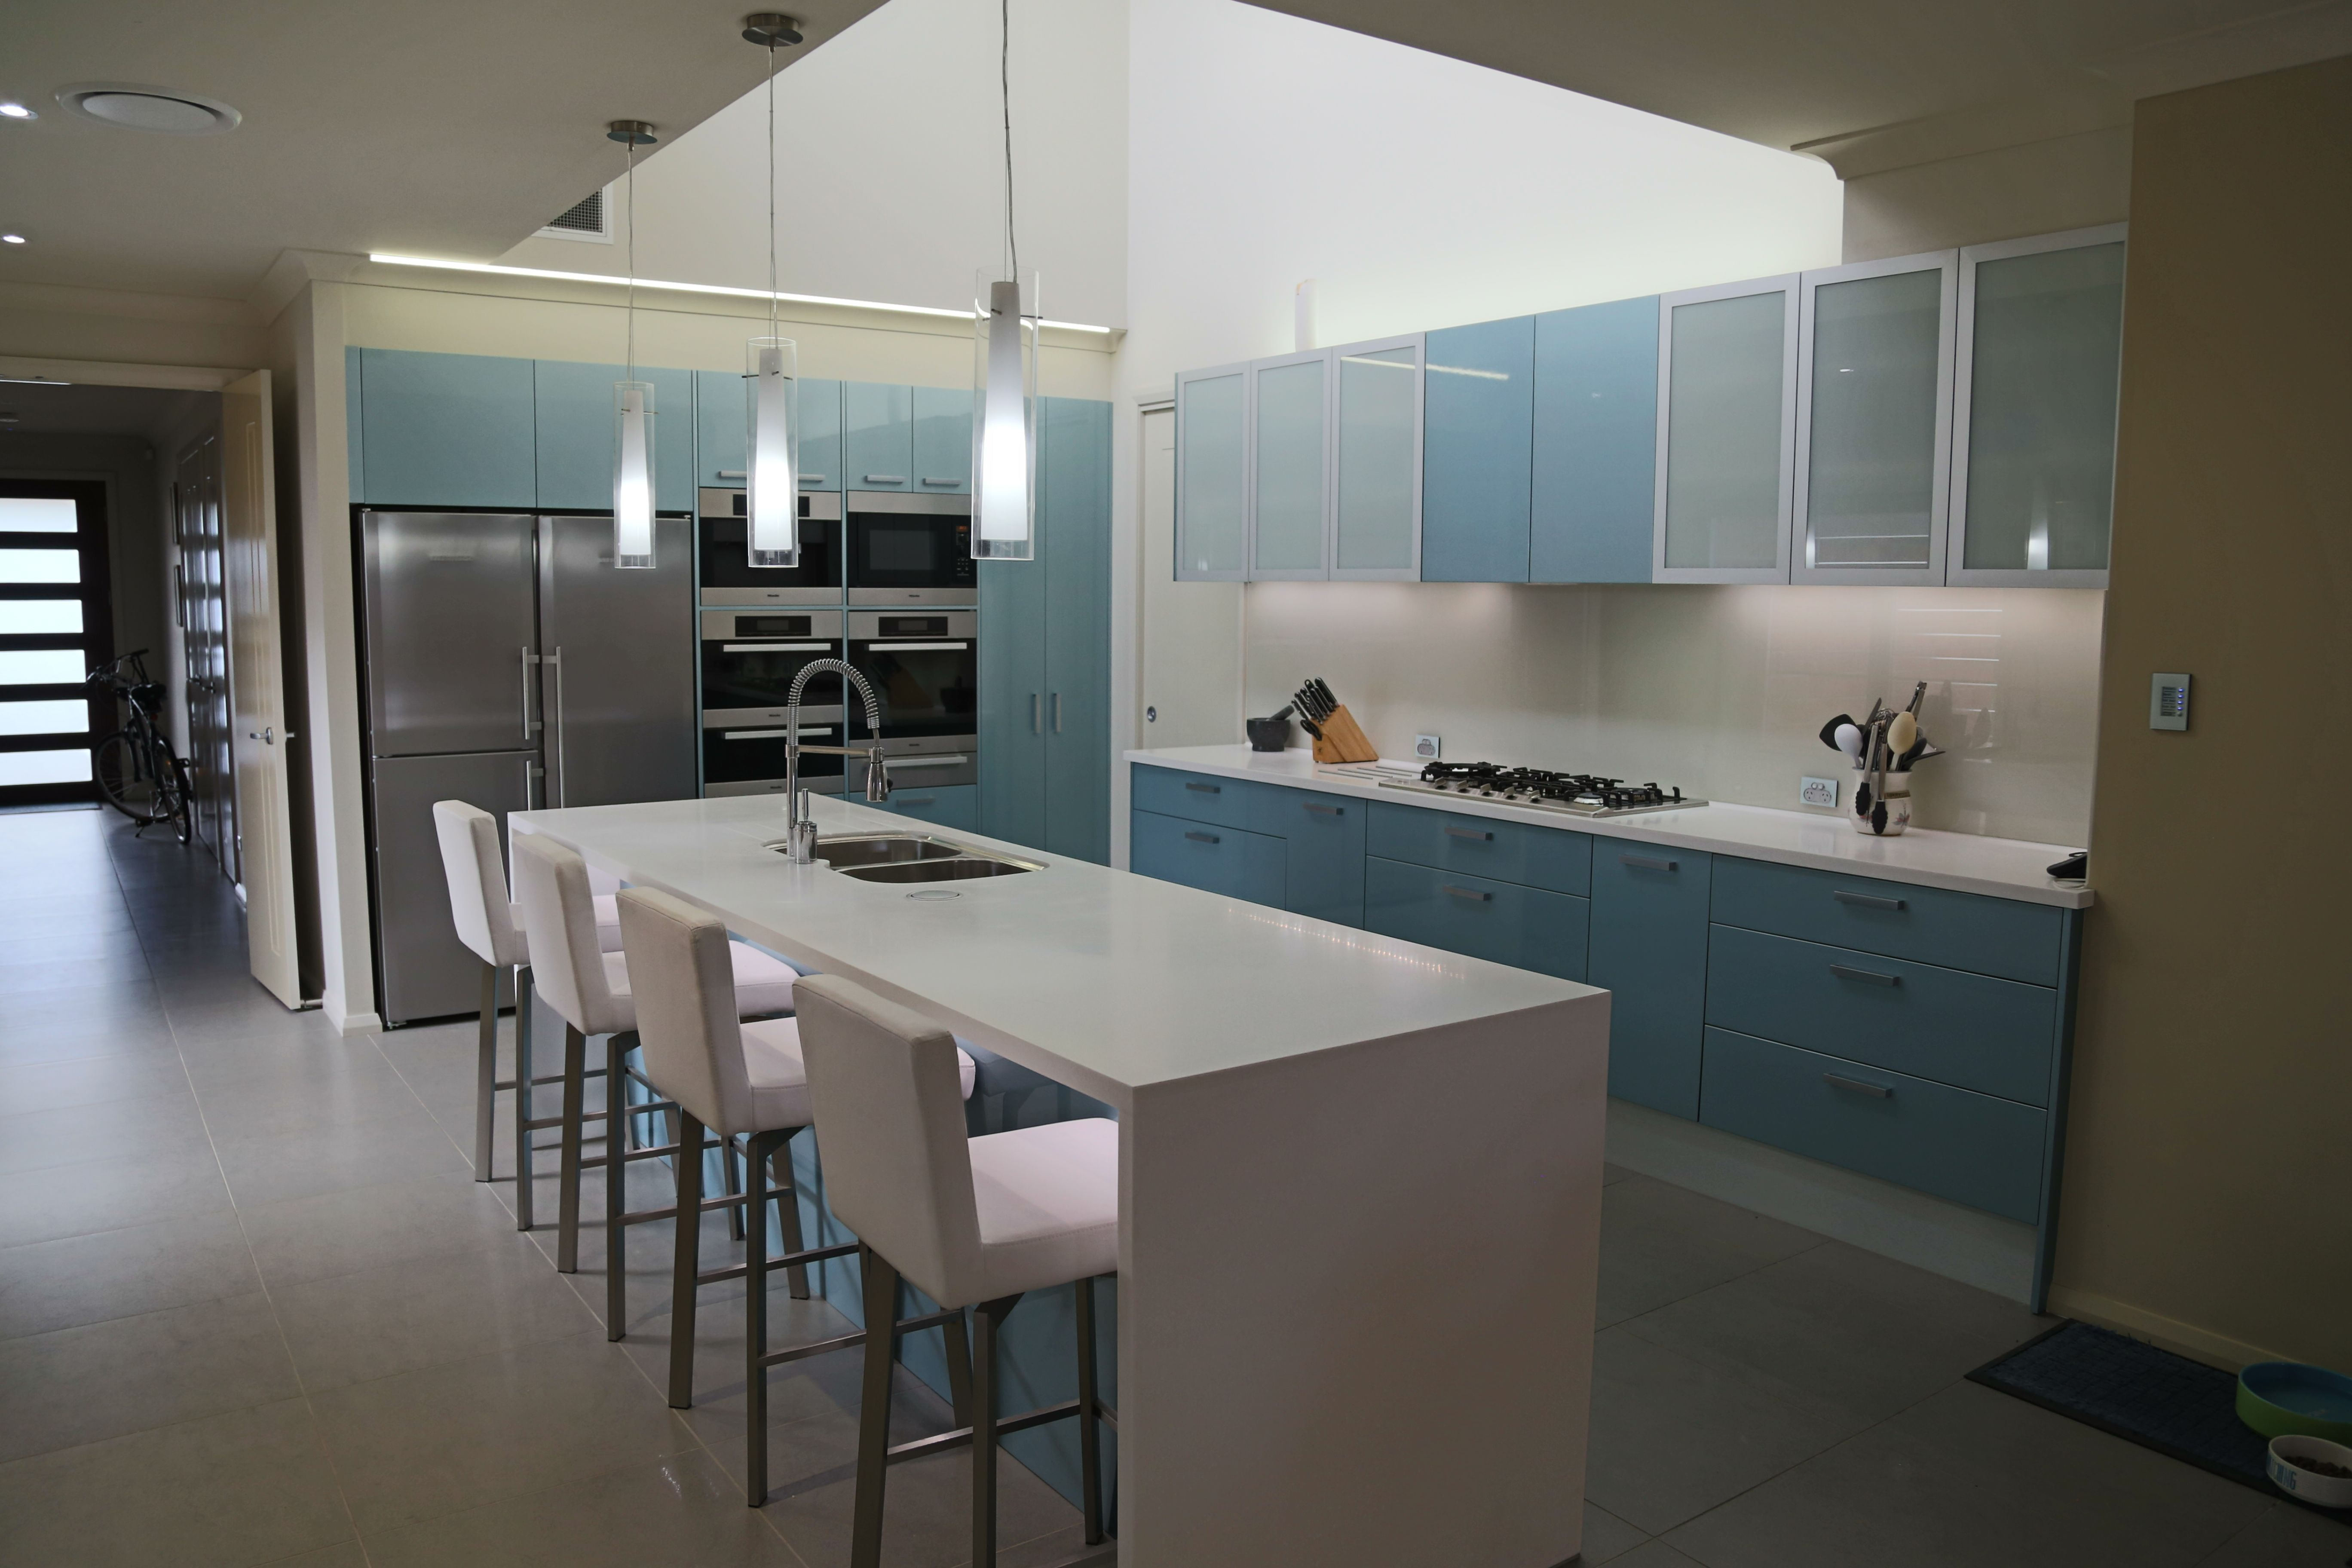 Corian Waterfal Benchtop In Antartica Colour Polyurethane Gloss Doors Brand Evic Metallic In Bells Colour Kitchen Renovation Joinery Design New Kitchen